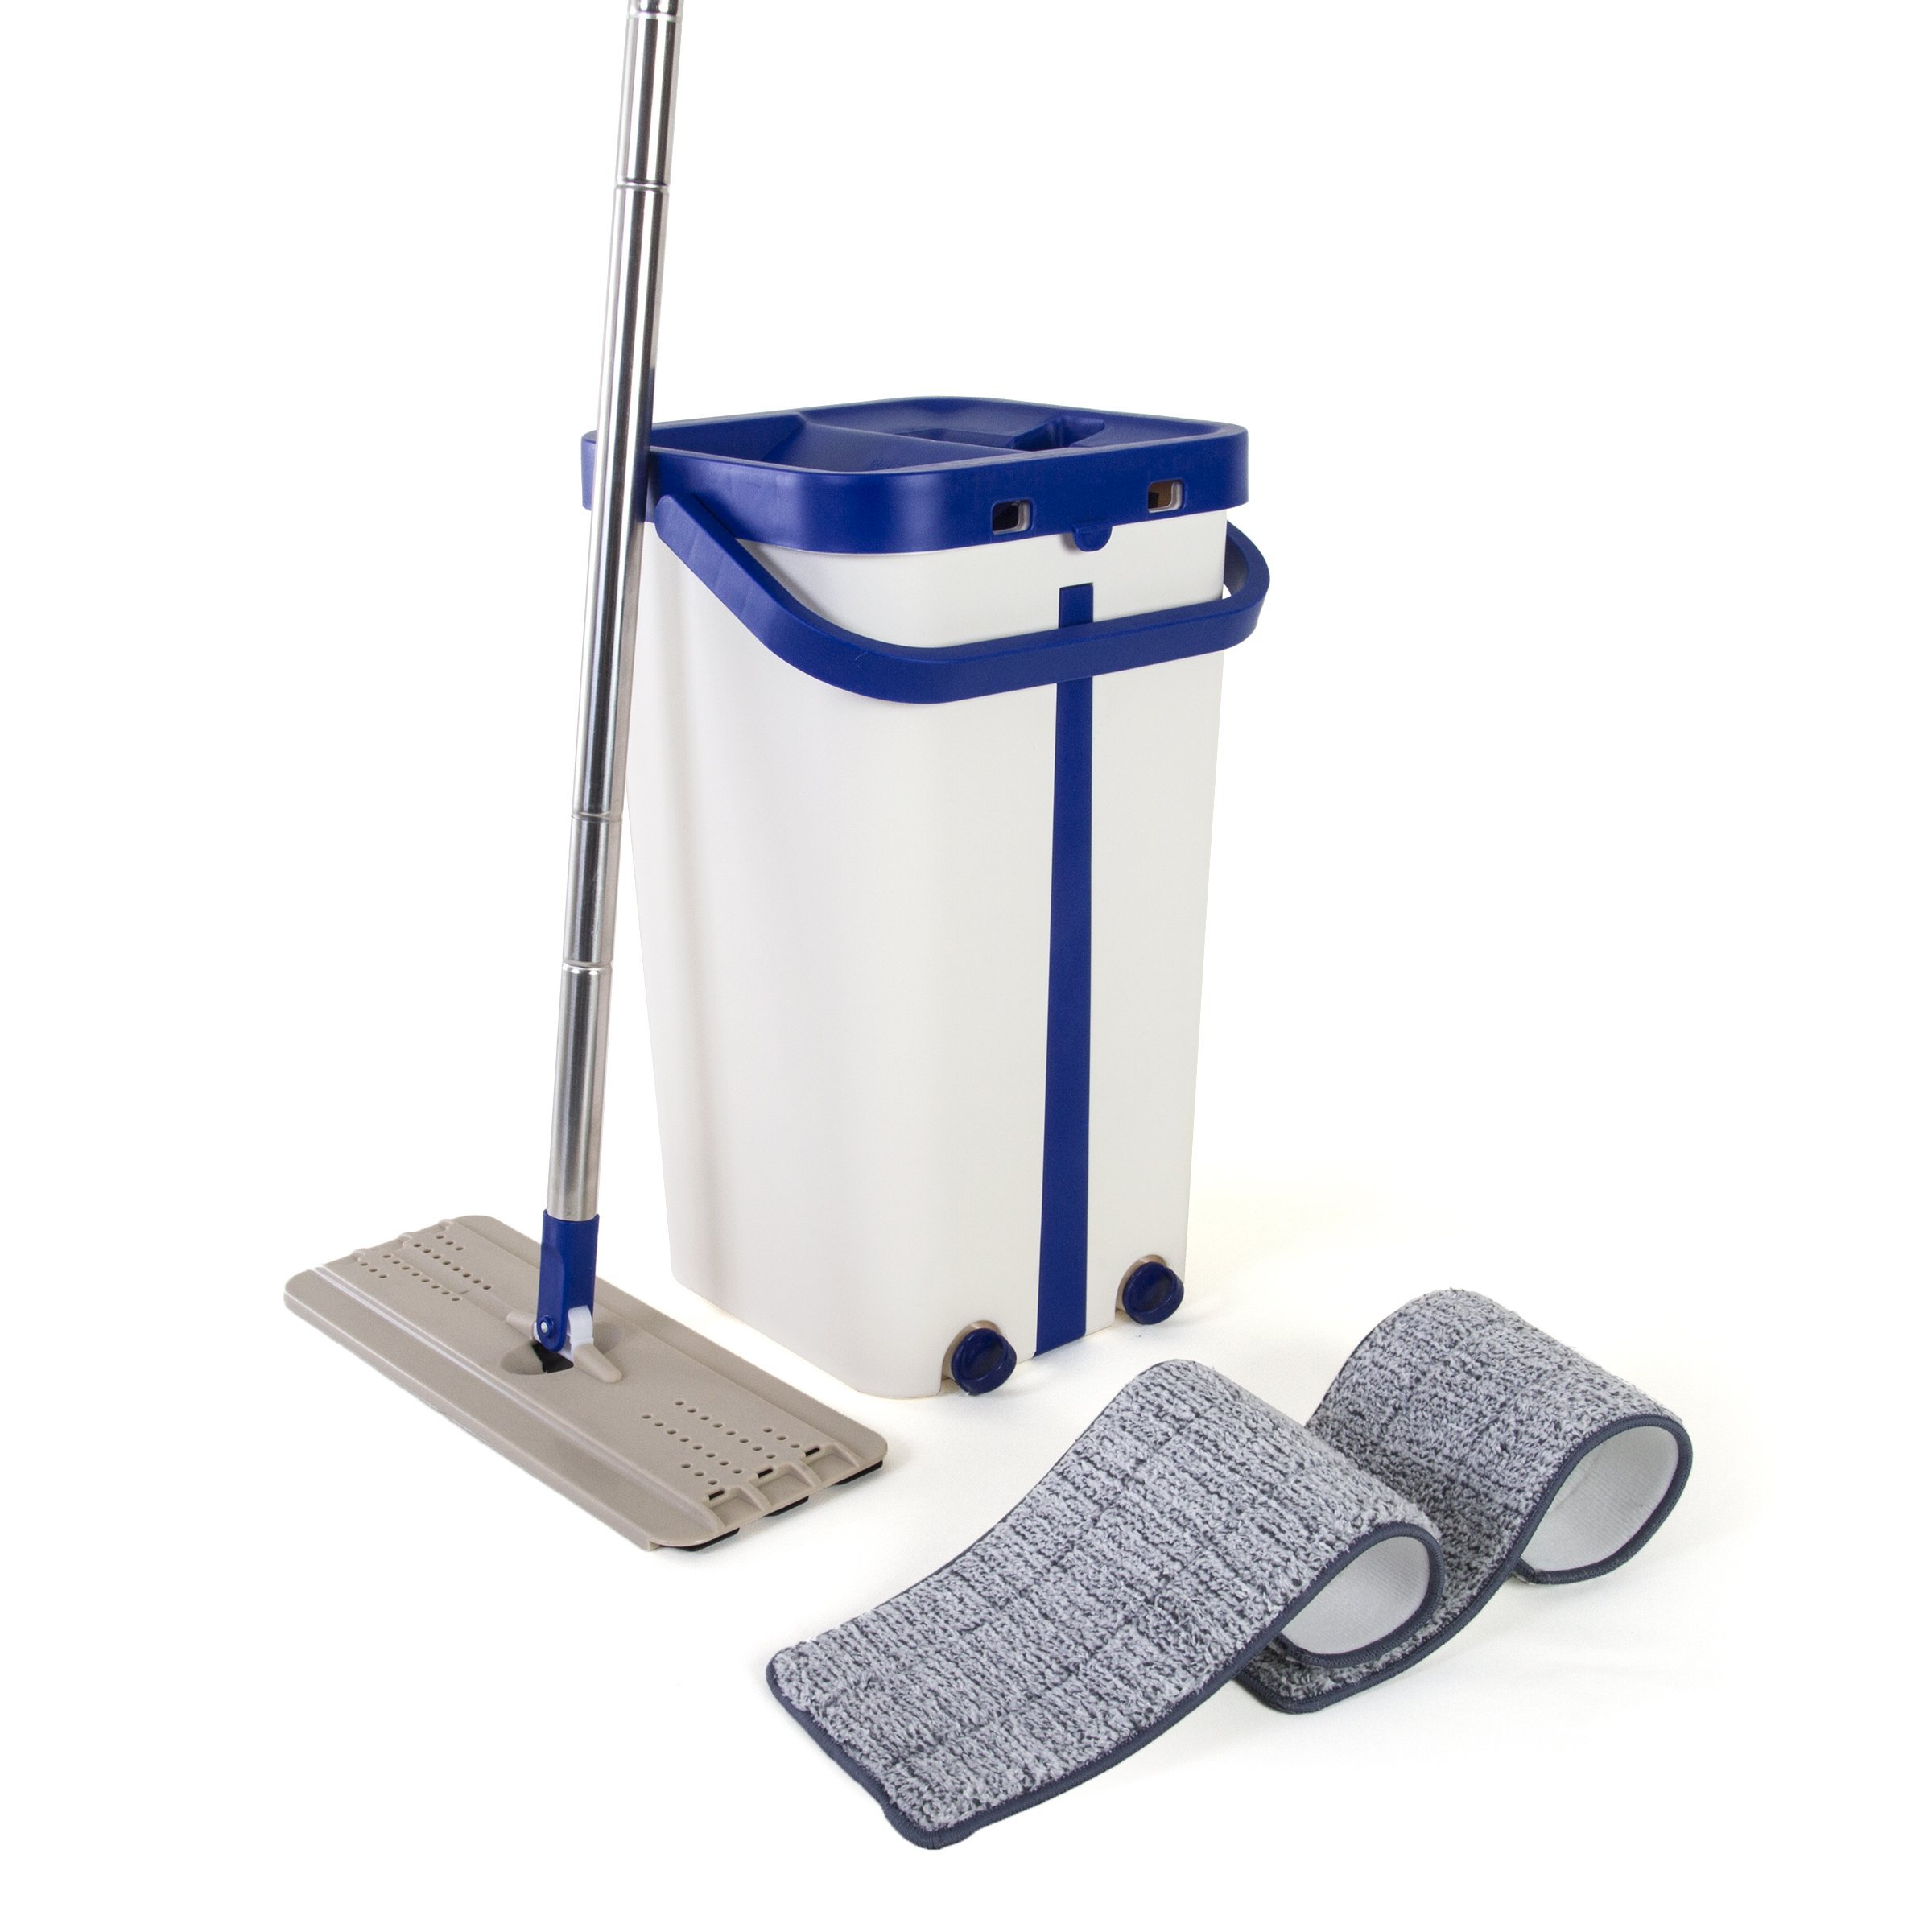 Kitchen + Home Wash & Dry Mop – Self Cleaning Flat Mop and Bucket System with 2 Reusable Microfiber Mop Pads for Wet and Dry Mopping on All Floor Surfaces